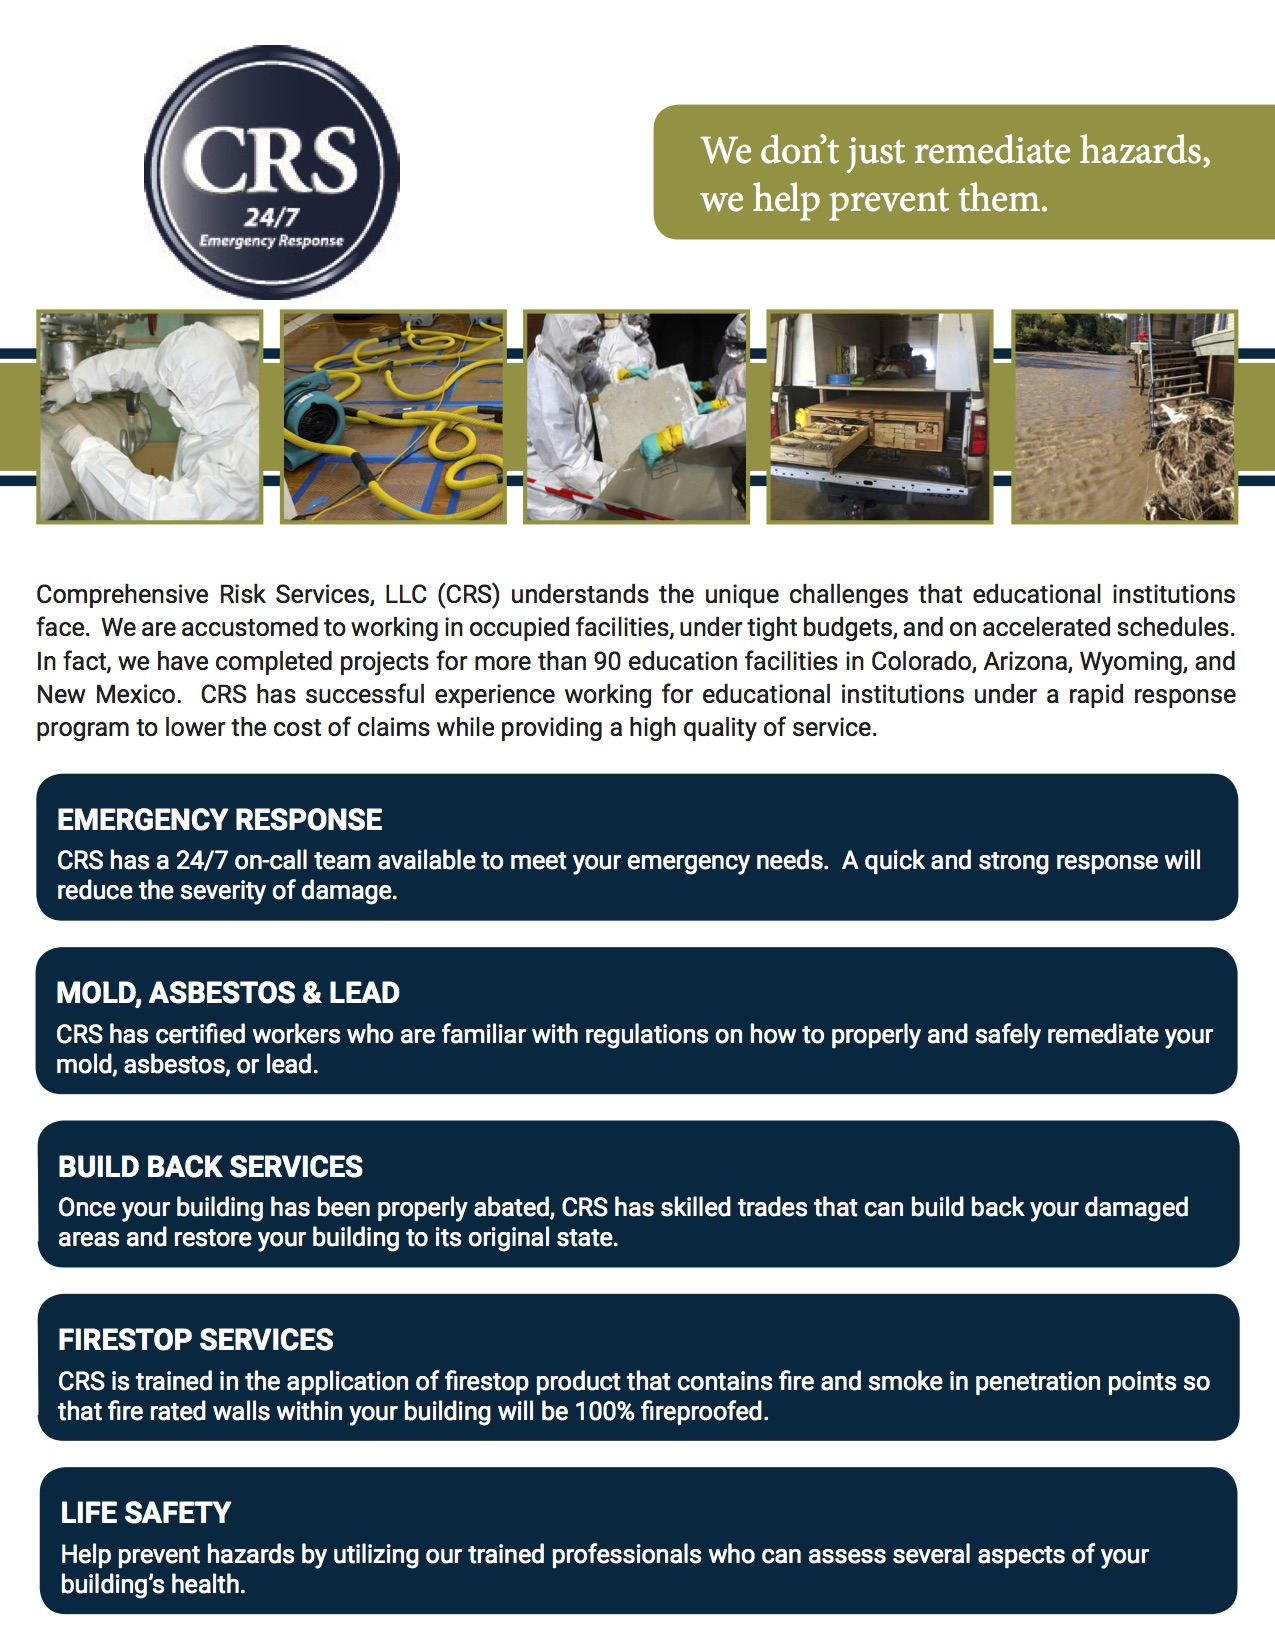 TCPN CRS Landing Page - Overview 9-17-15